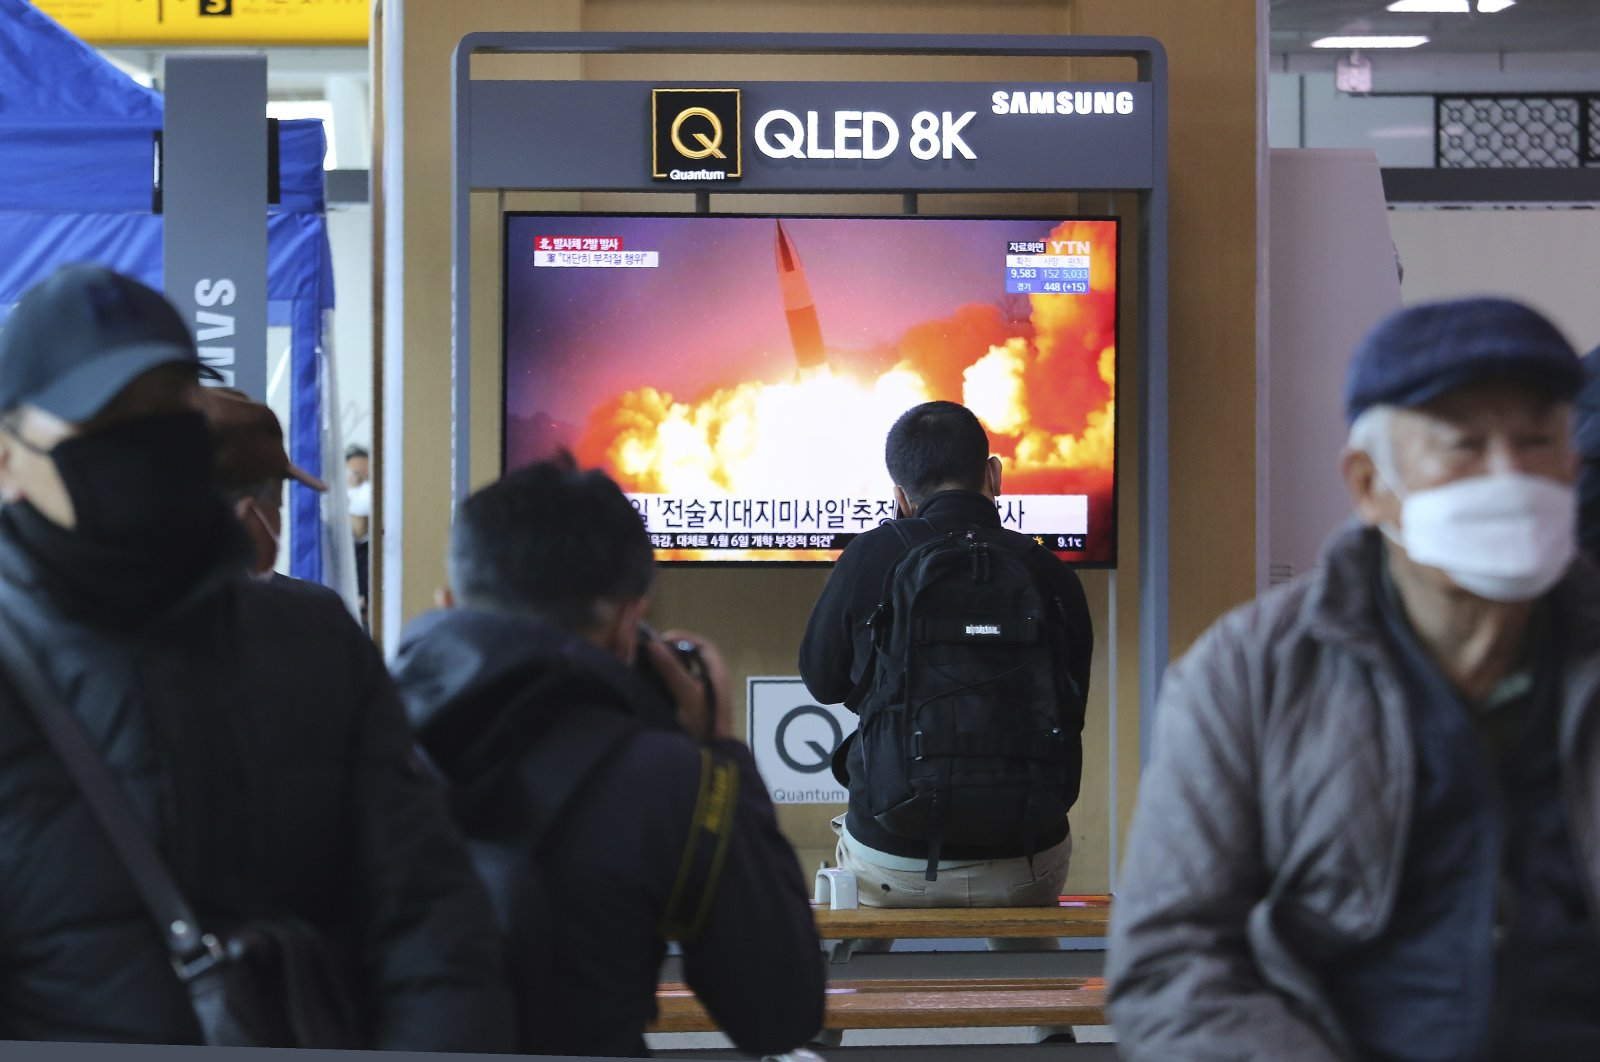 People watch a TV screen showing a file image of North Korea's missile launch during a news program at the Seoul Railway Station in Seoul, South Korea, Sunday, March 29, 2020. (AP Photo)